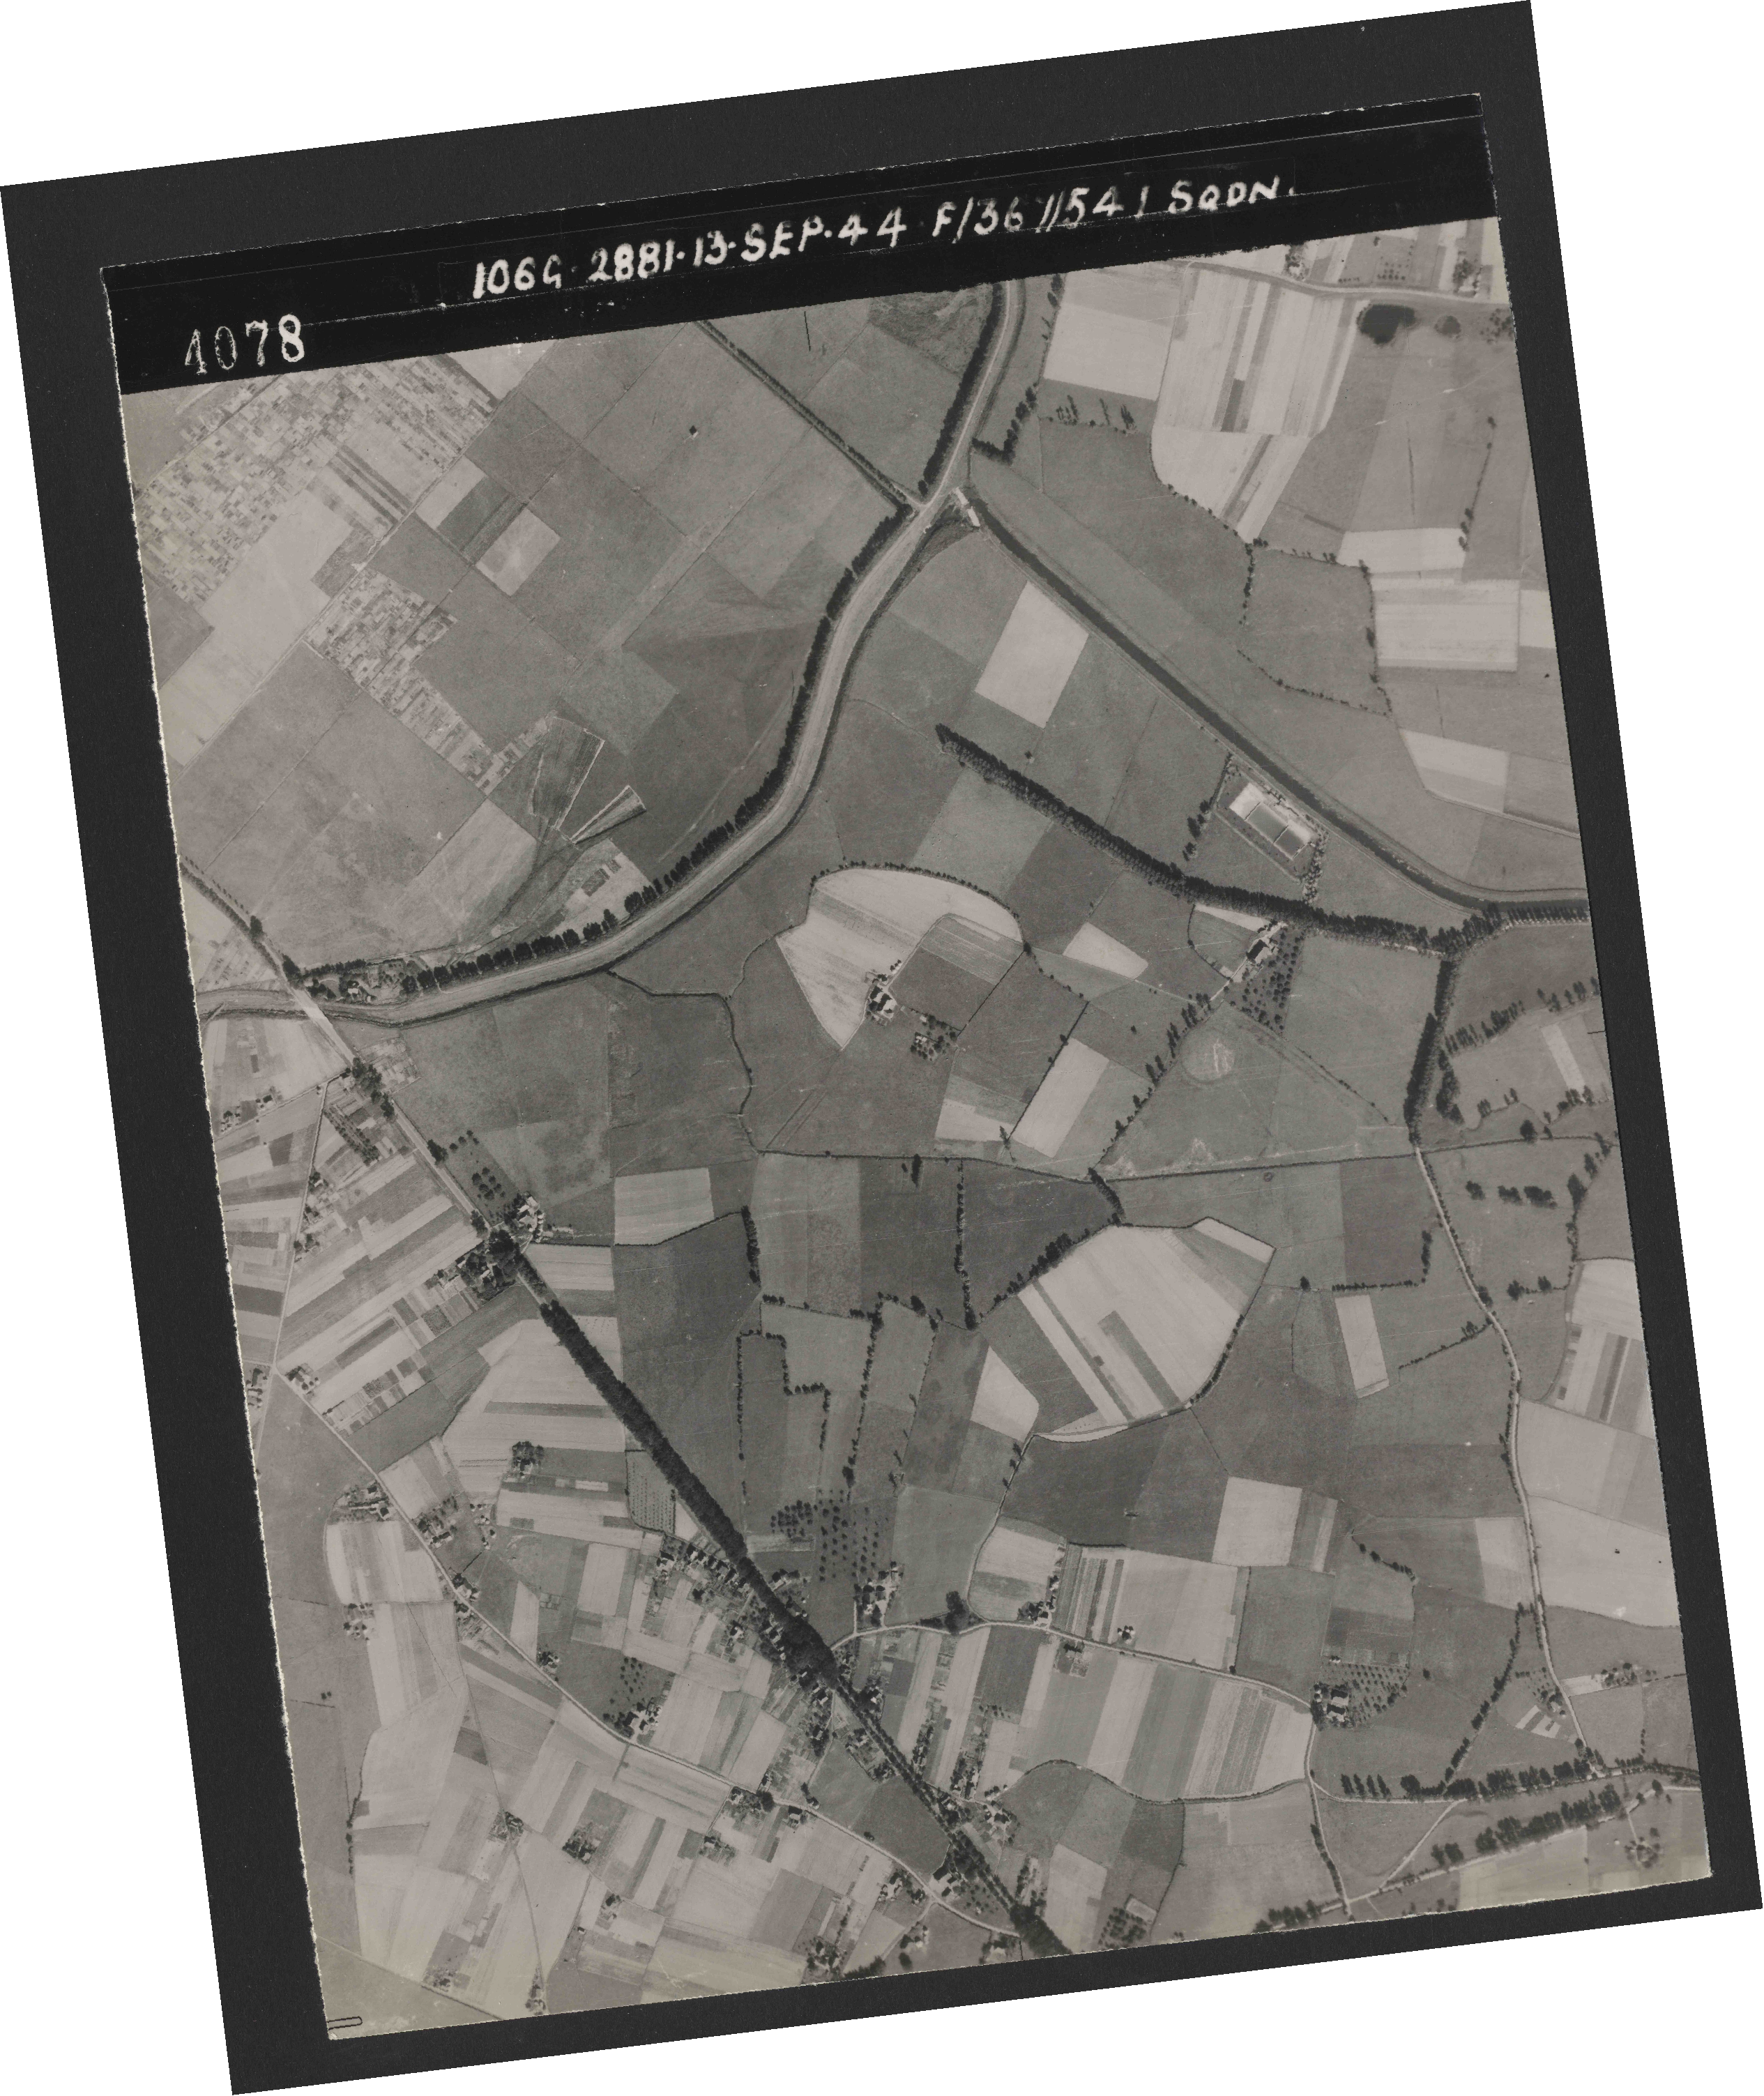 Collection RAF aerial photos 1940-1945 - flight 298, run 18, photo 4078